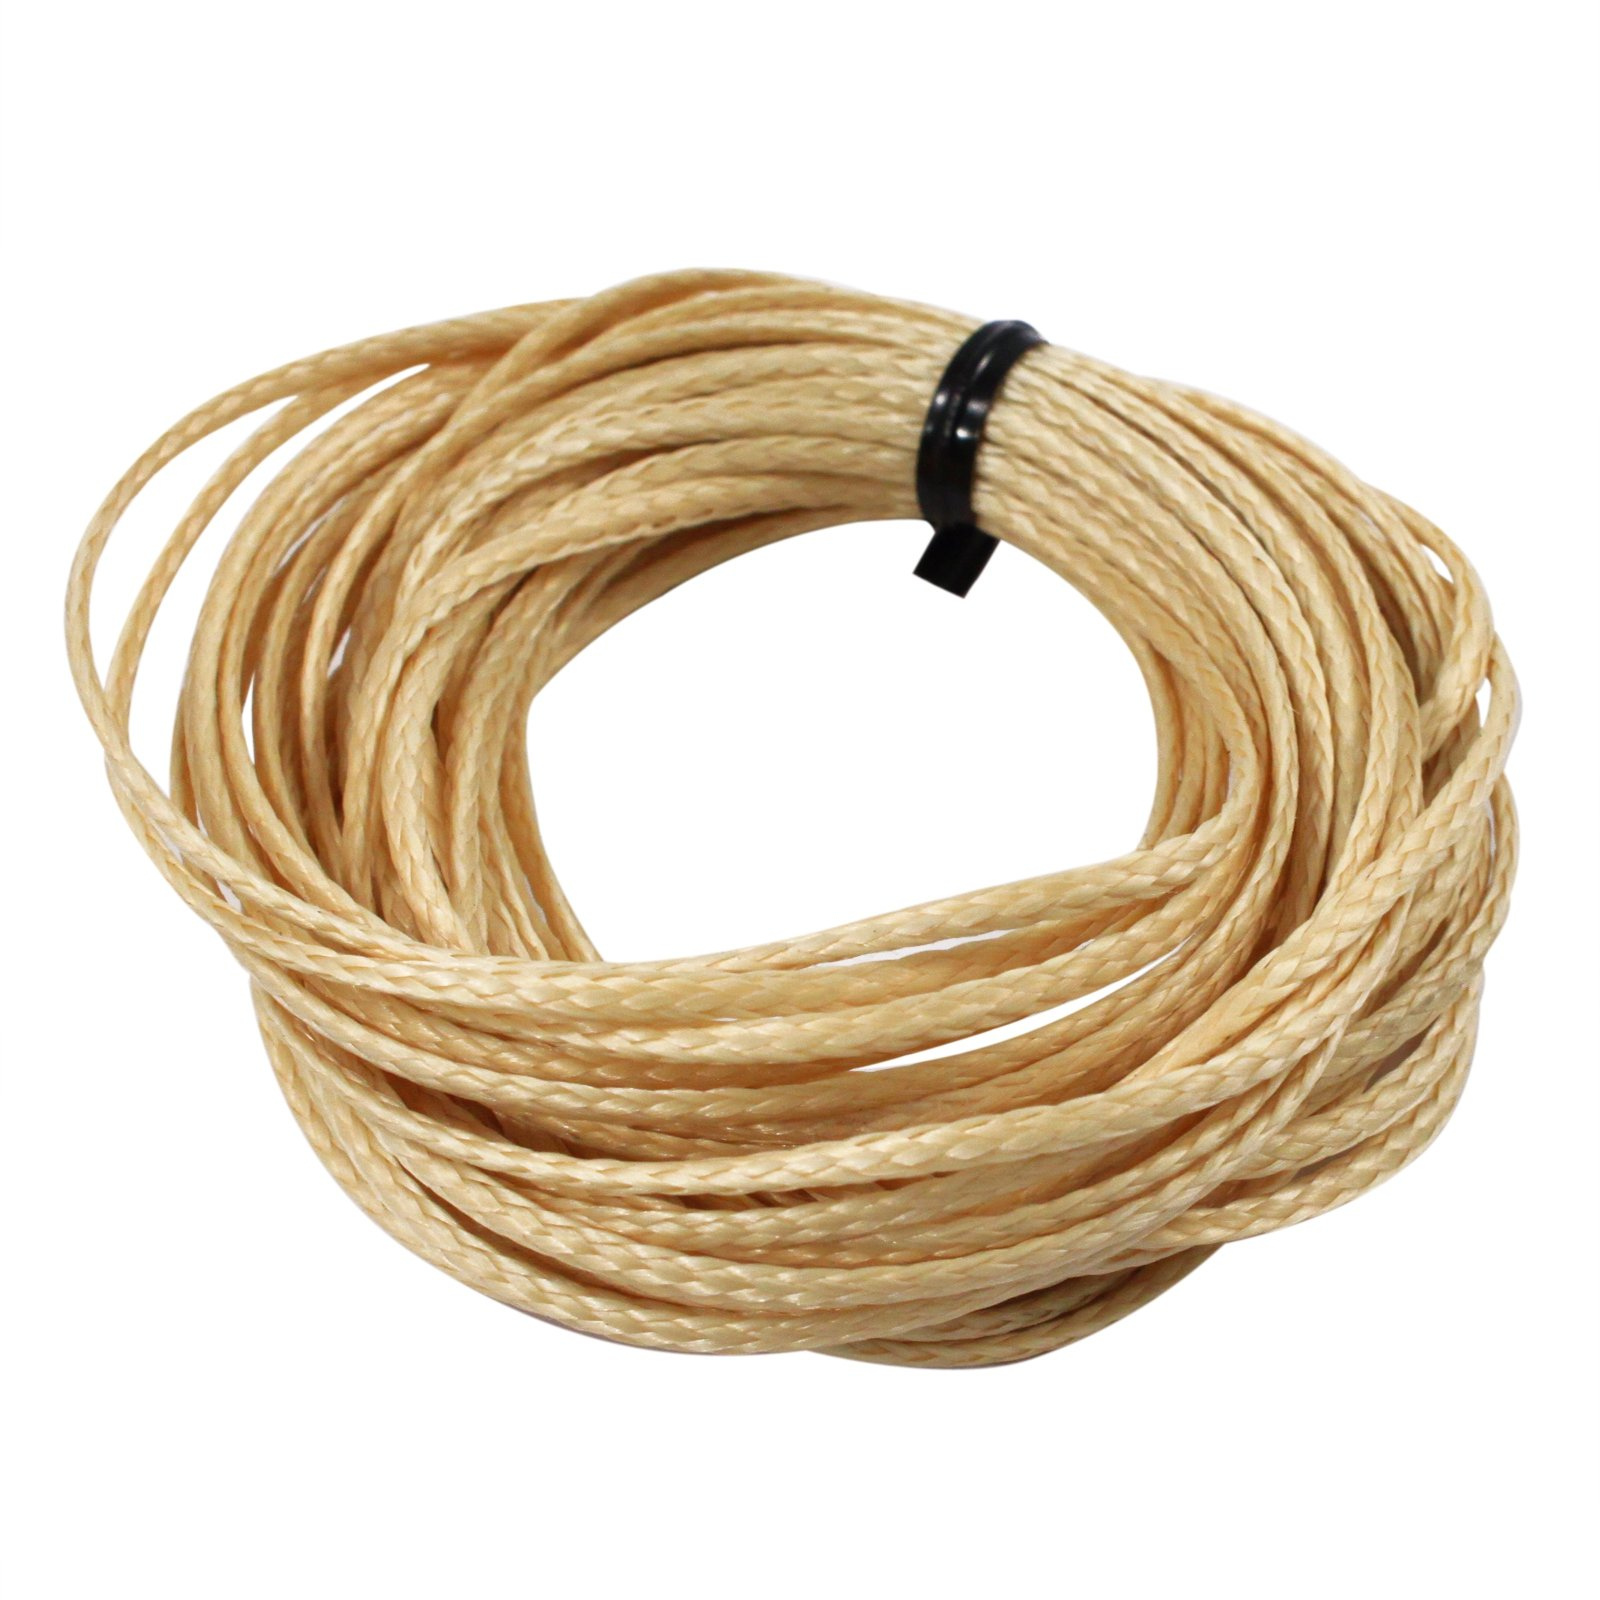 ASR Outdoor Technora Composite Survival Rope 1200lb Breaking Strength 500ft Tan